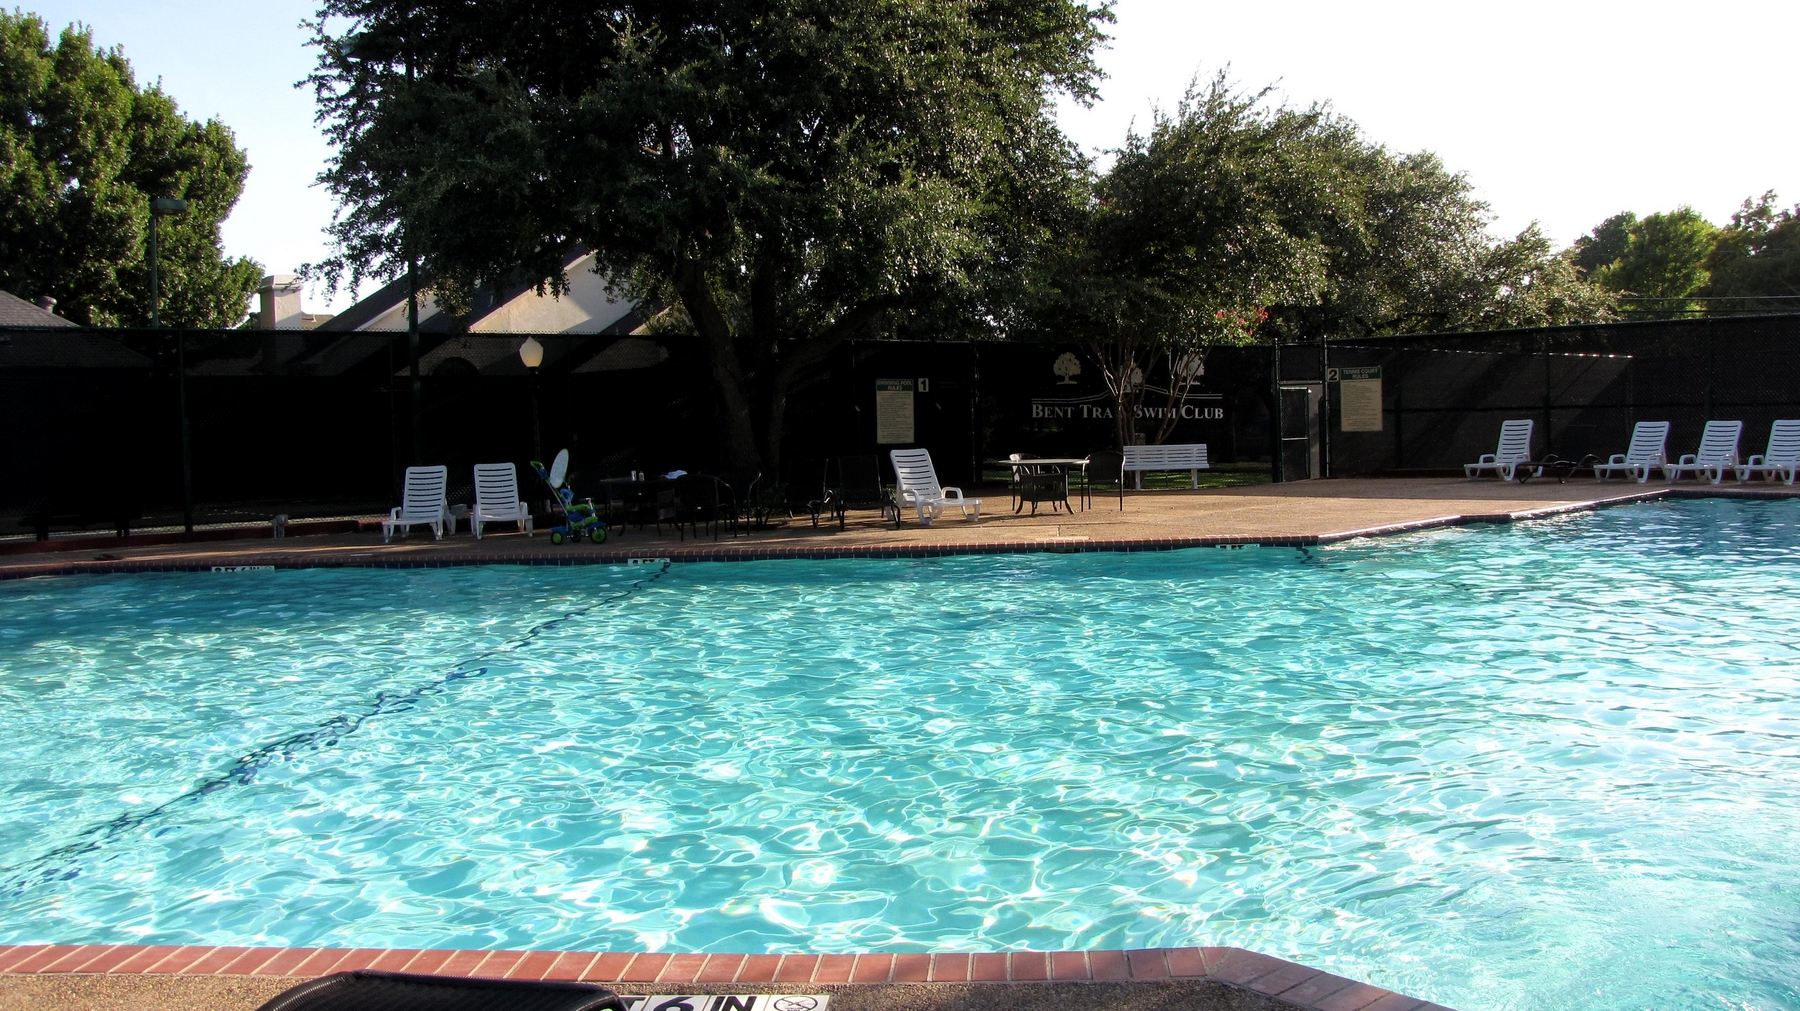 Bent Trails Swim Club Pool.jpg